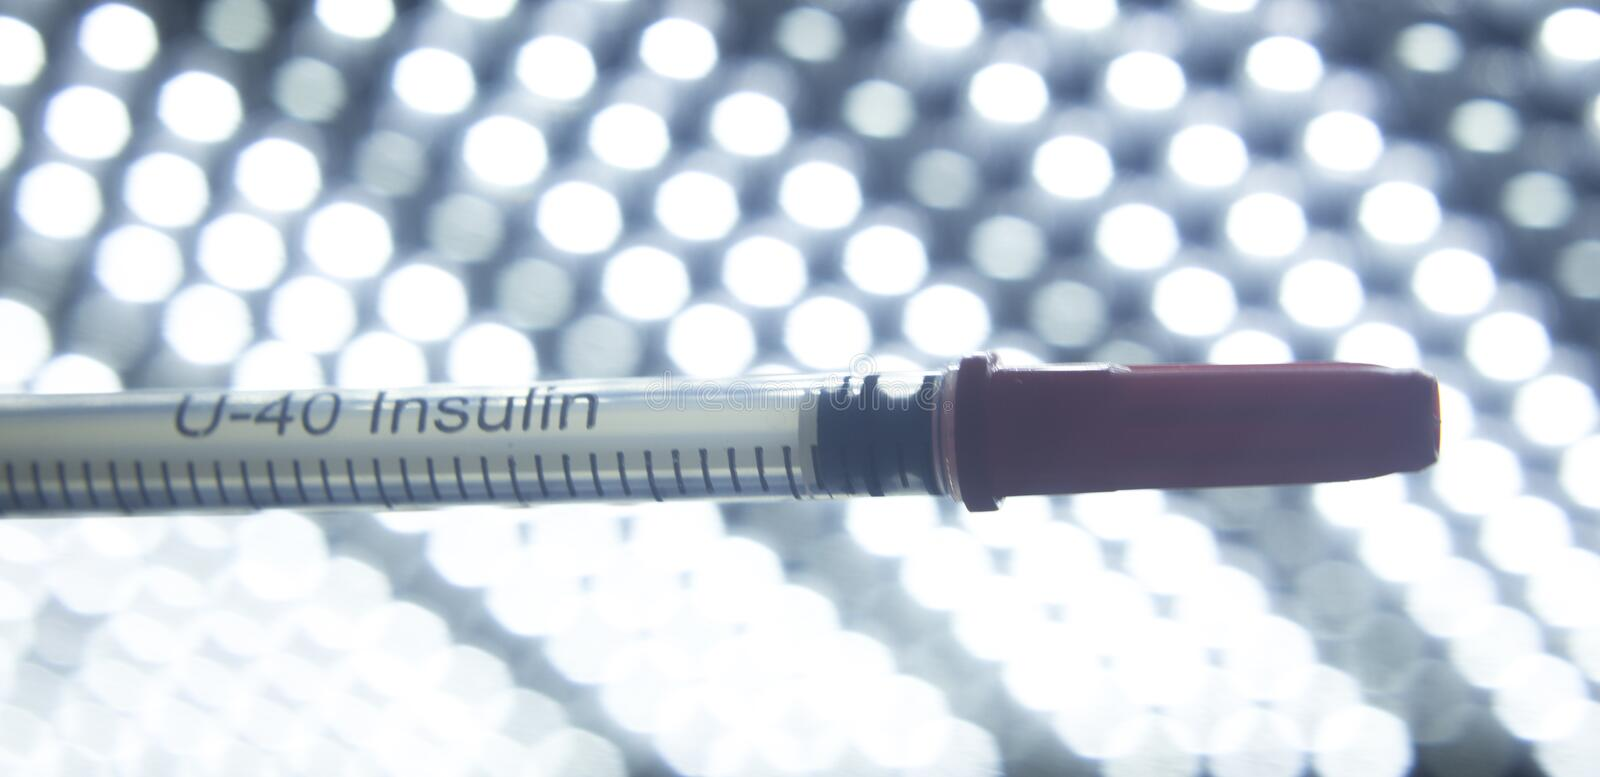 Medical injection syring needle. Medical injection syring hypodermic needle for insulin injections in diabetic patients and vaccines for vaccinations royalty free stock photography